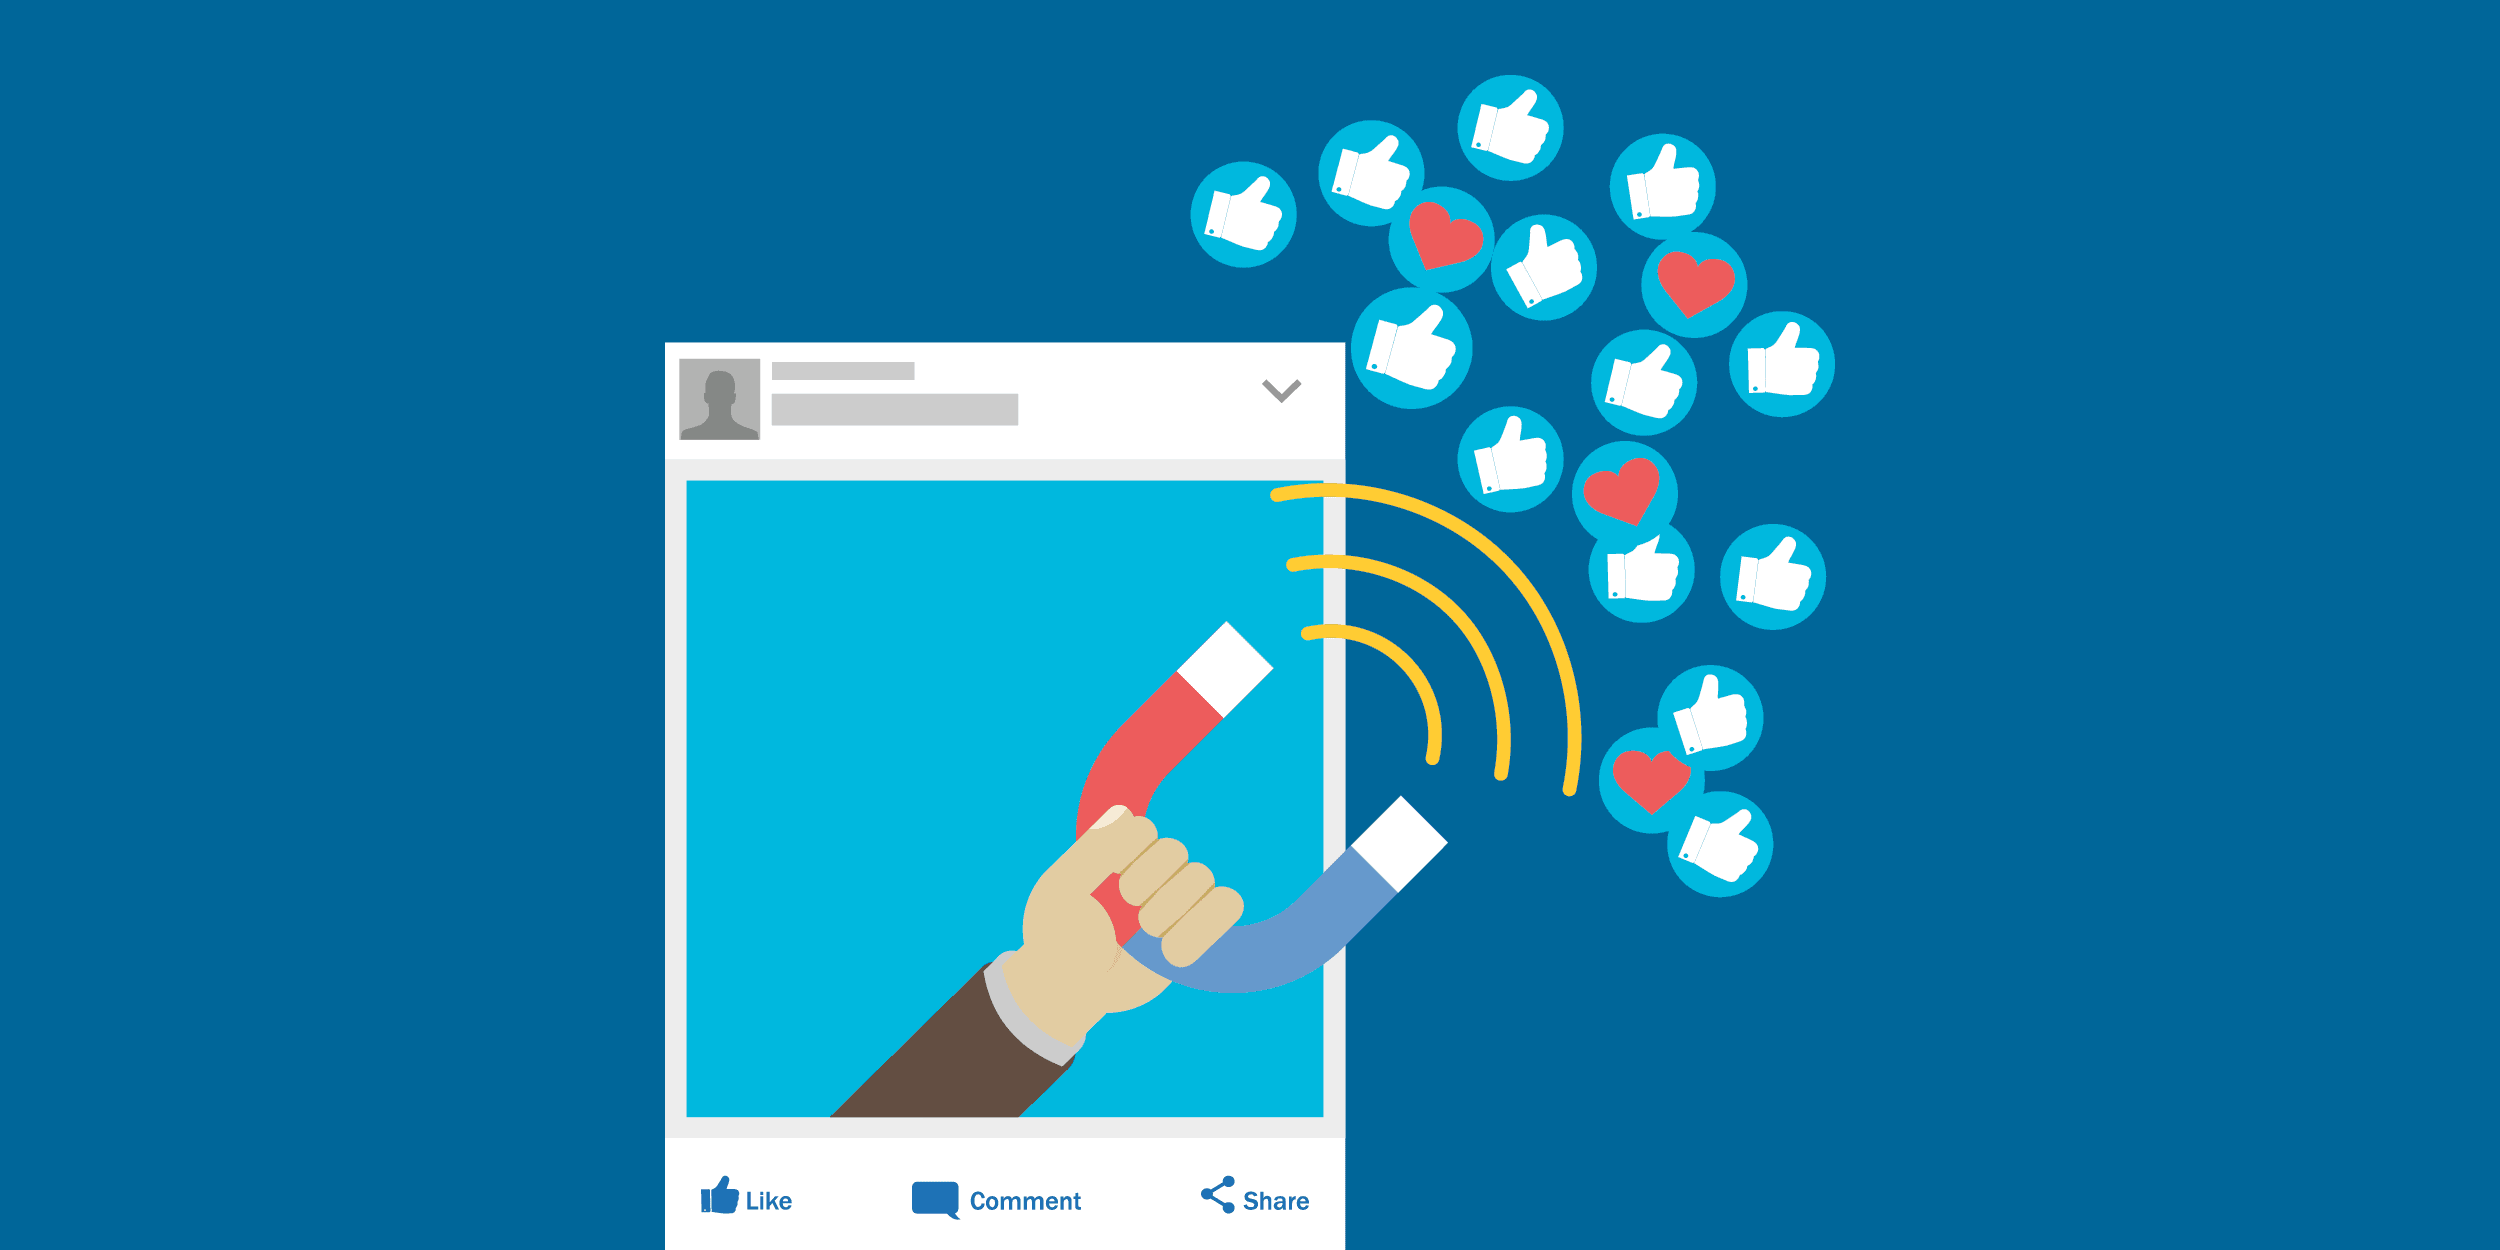 An illustration of a Facebook post with a hand holding a magnet coming out of the frame and collecting hearts and thumbs-up icons magnetically